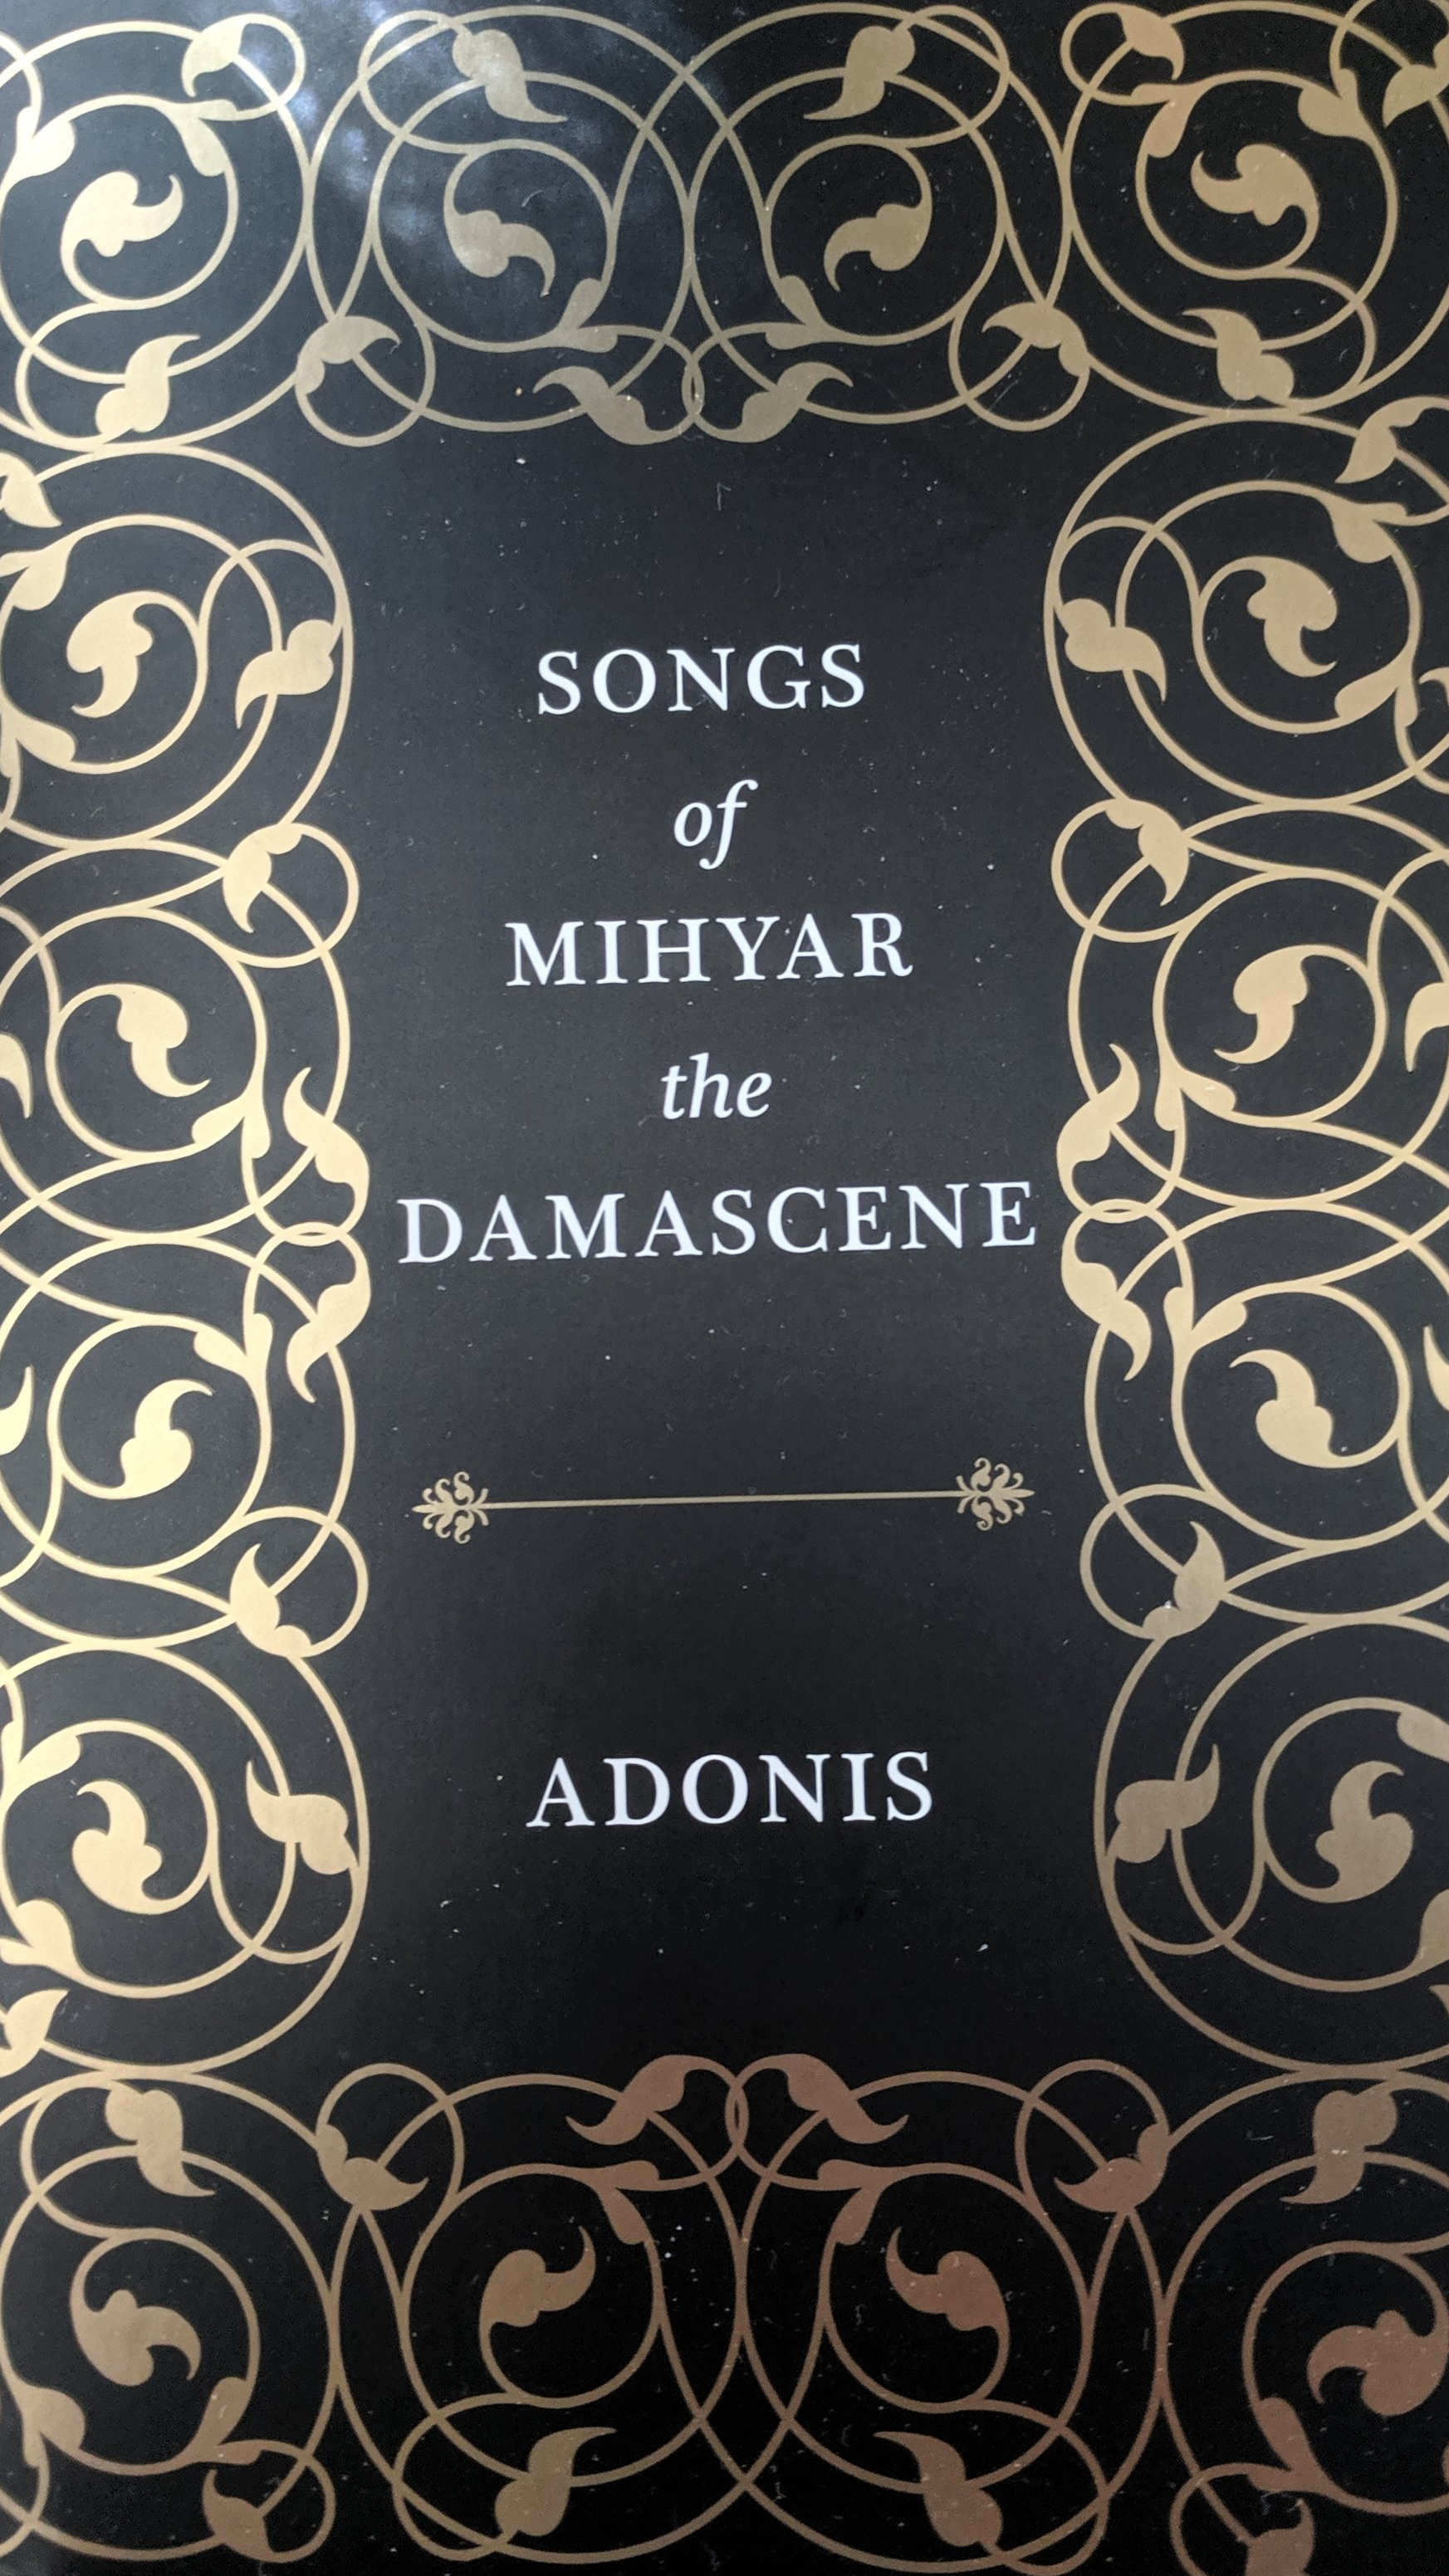 adonis - songs of mihyar